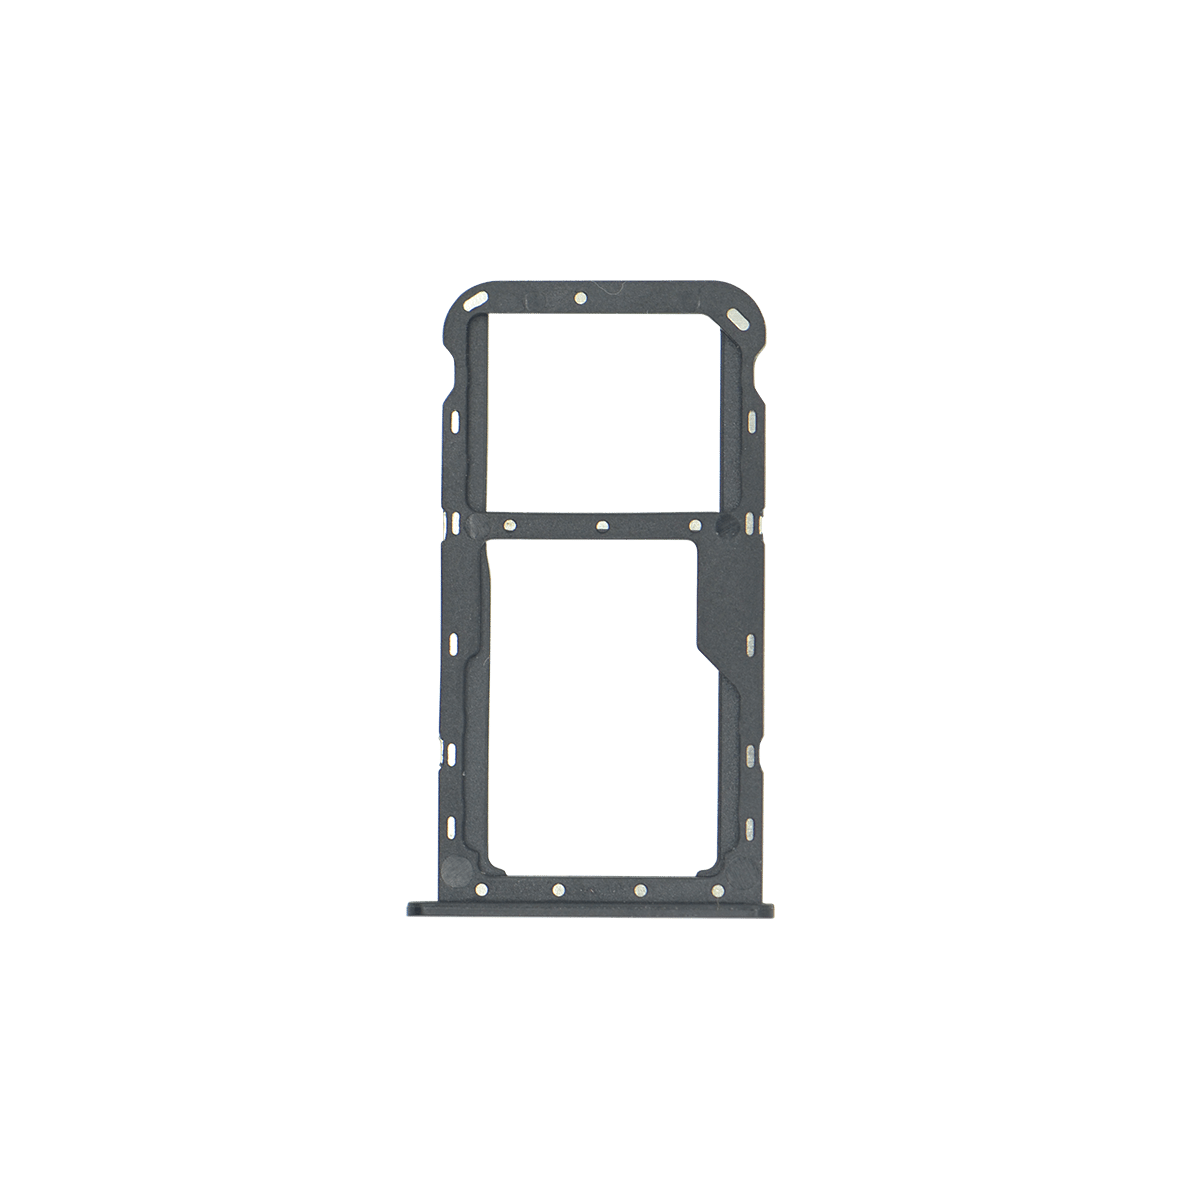 Huawei Honor 7X SIM Card Tray Replacement